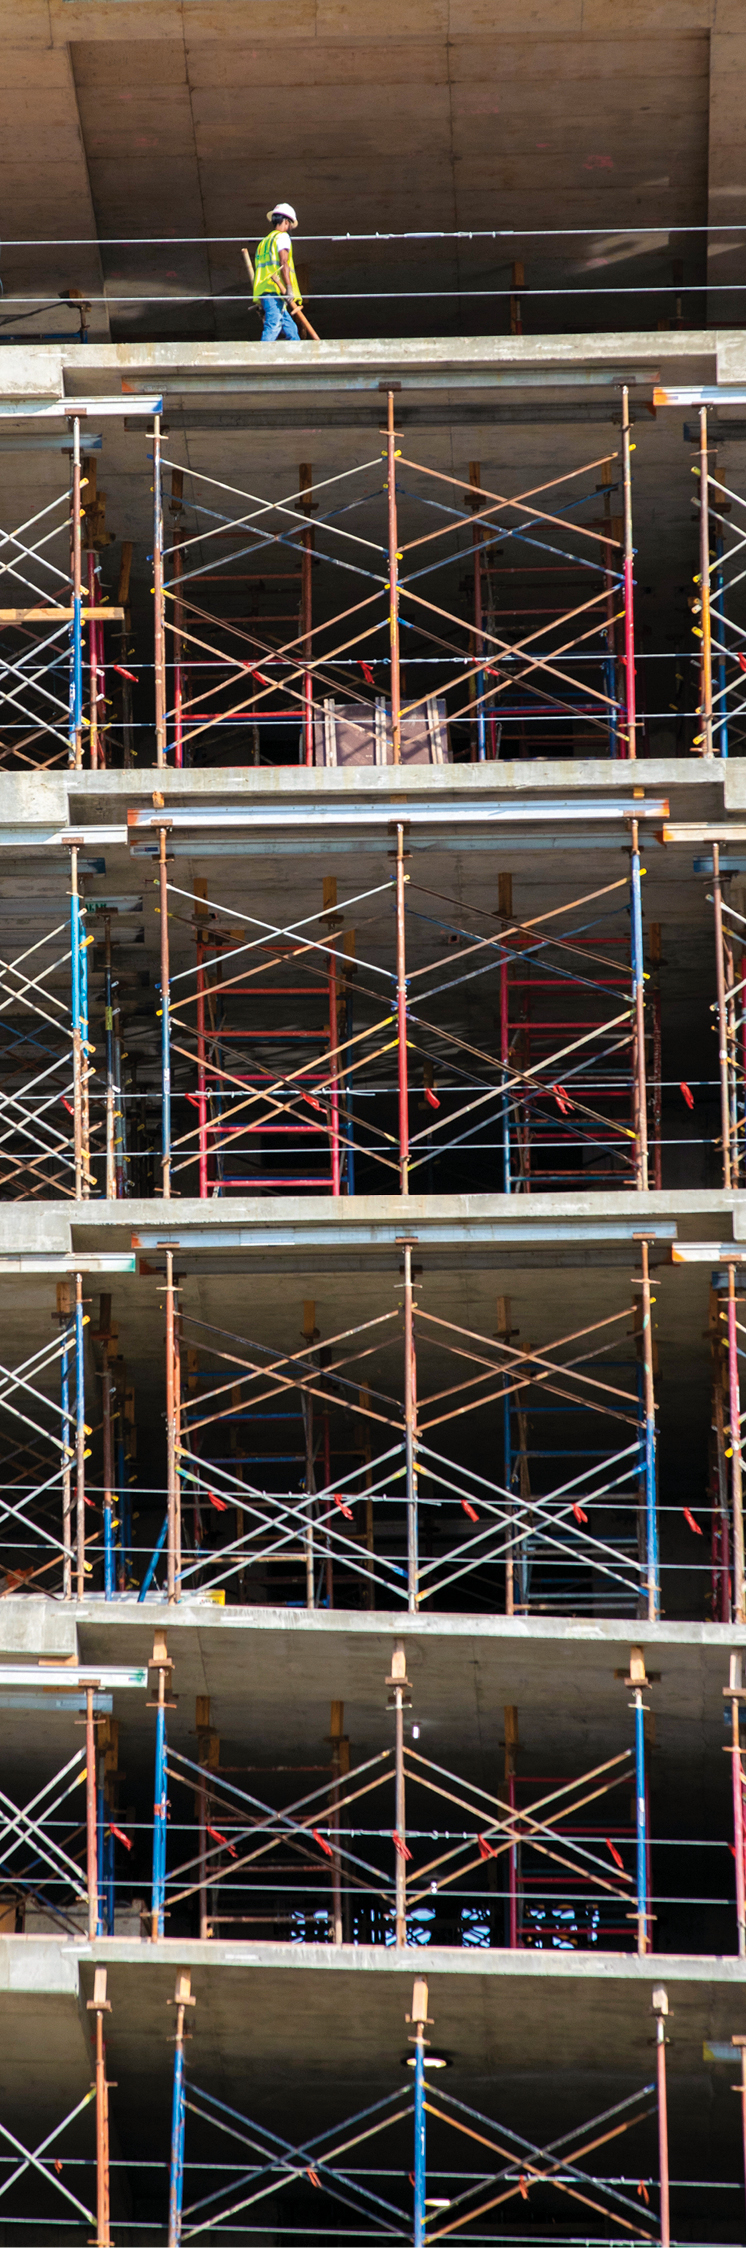 As concrete continues to cure, scaffolding supports several decks of flooring.